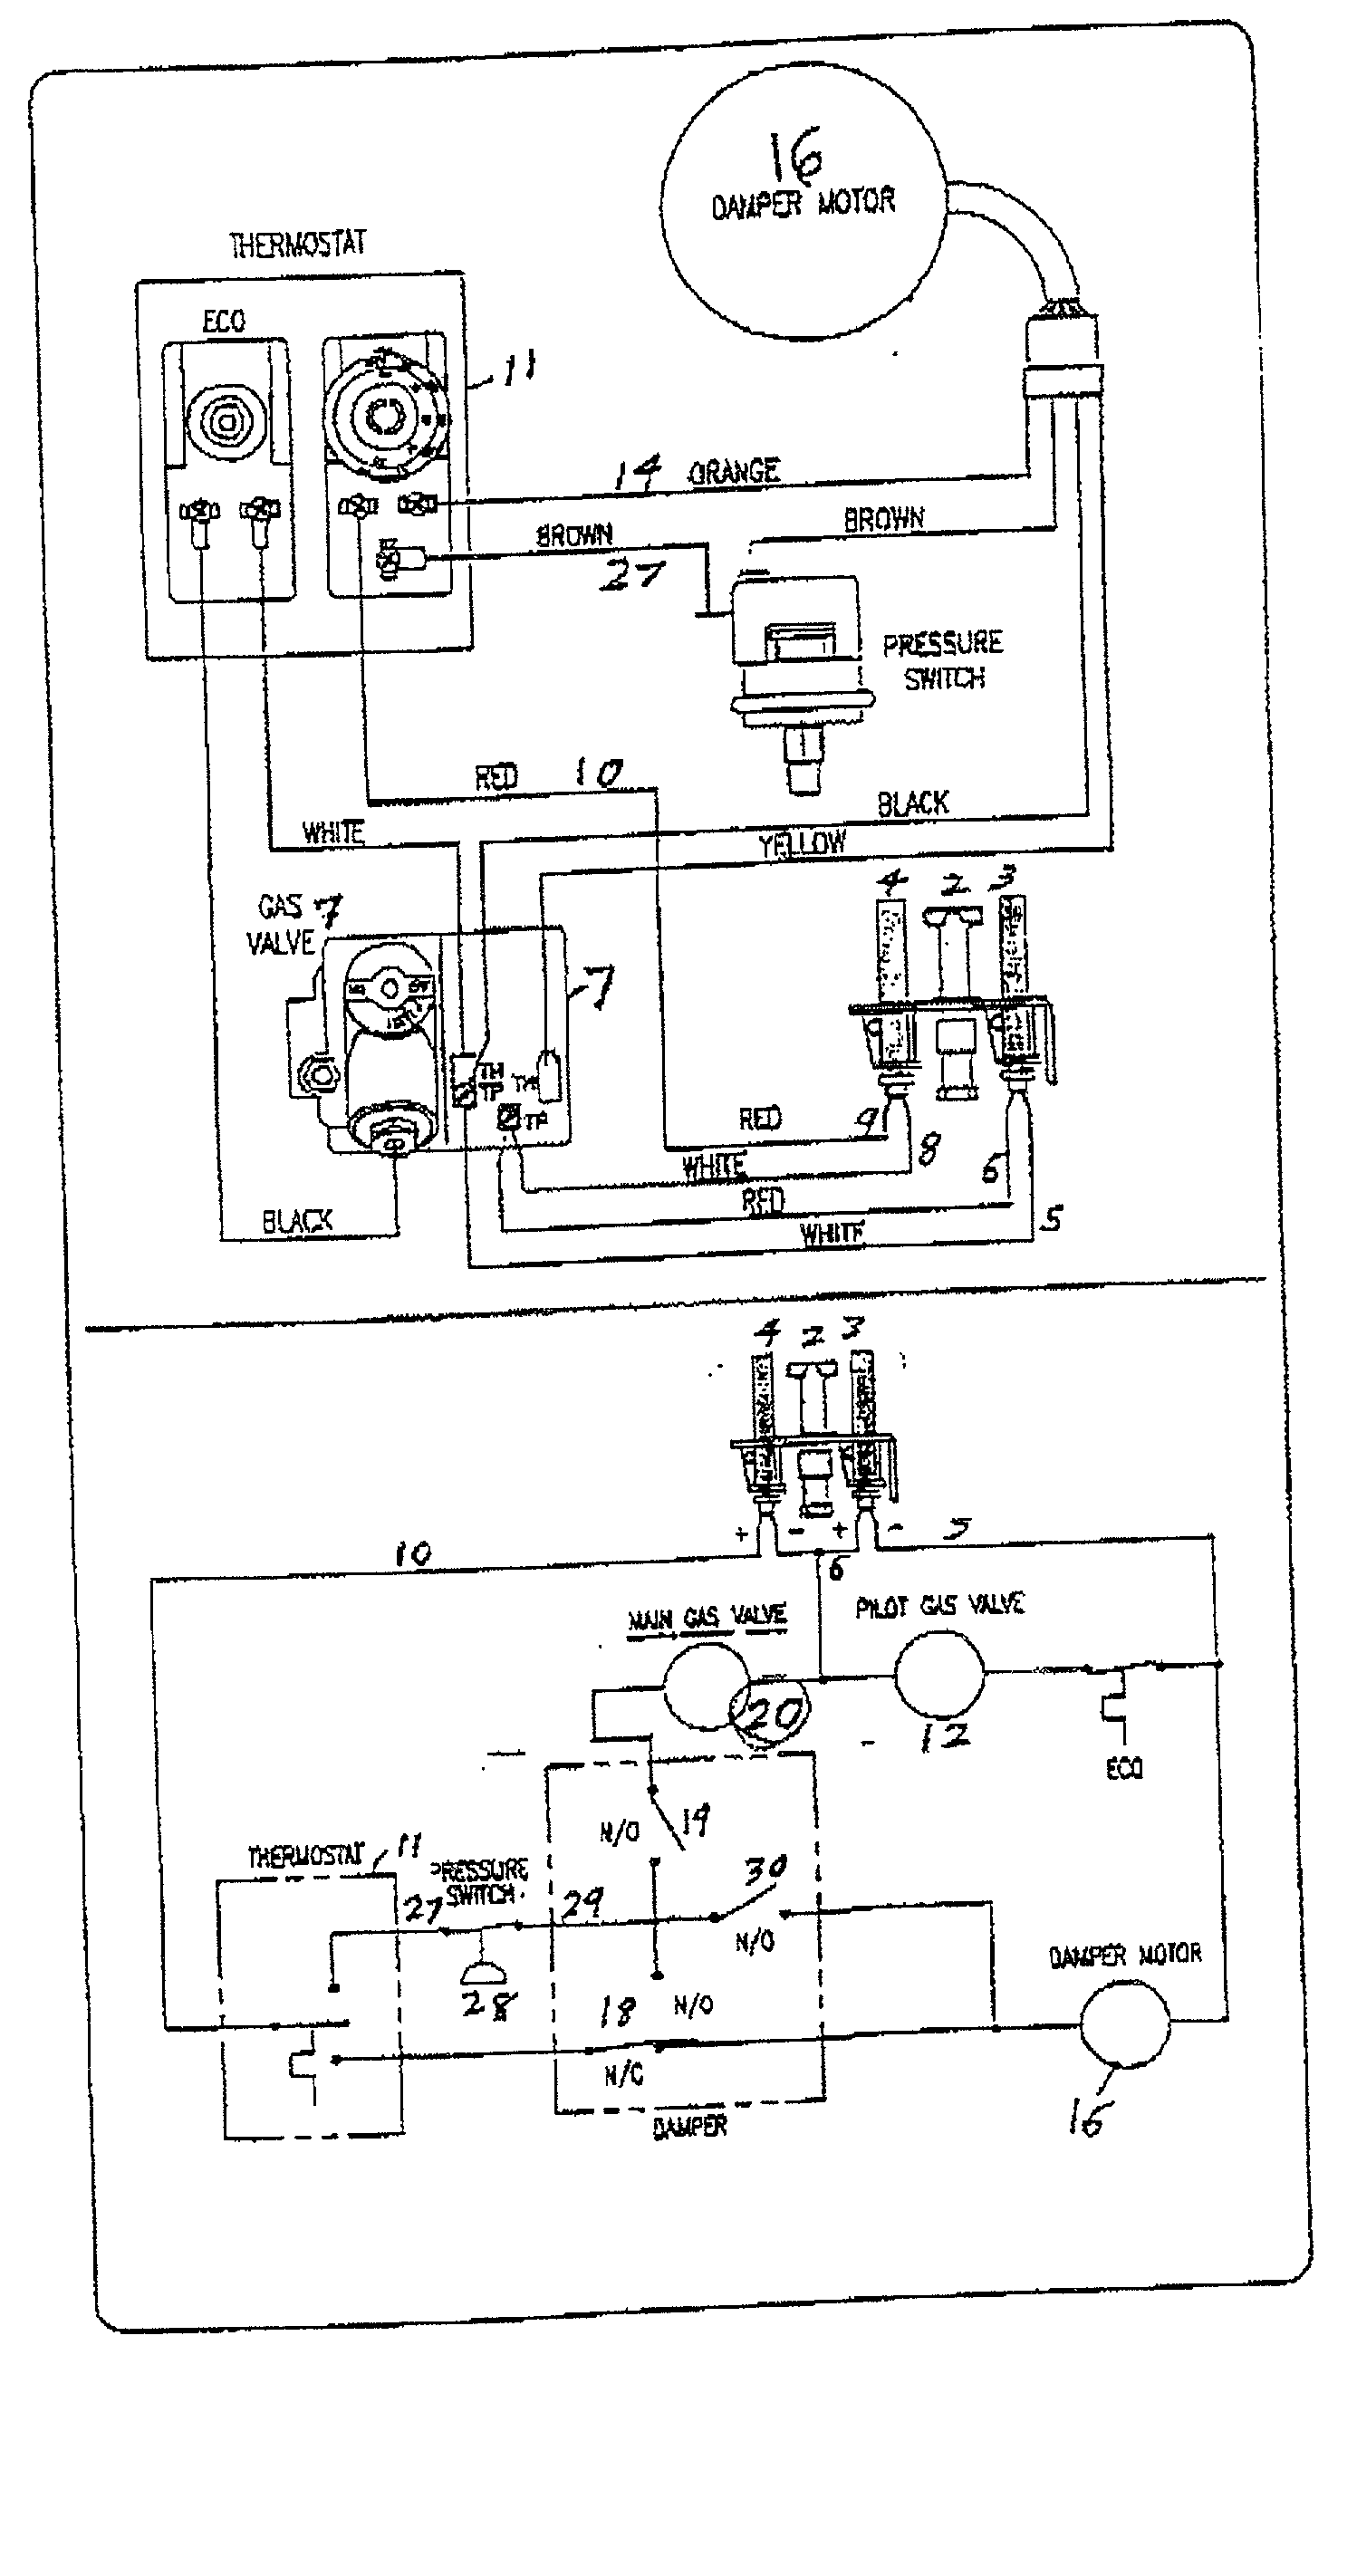 Wiring Diagram On Water Heater Get Free Image About Wiring Diagram